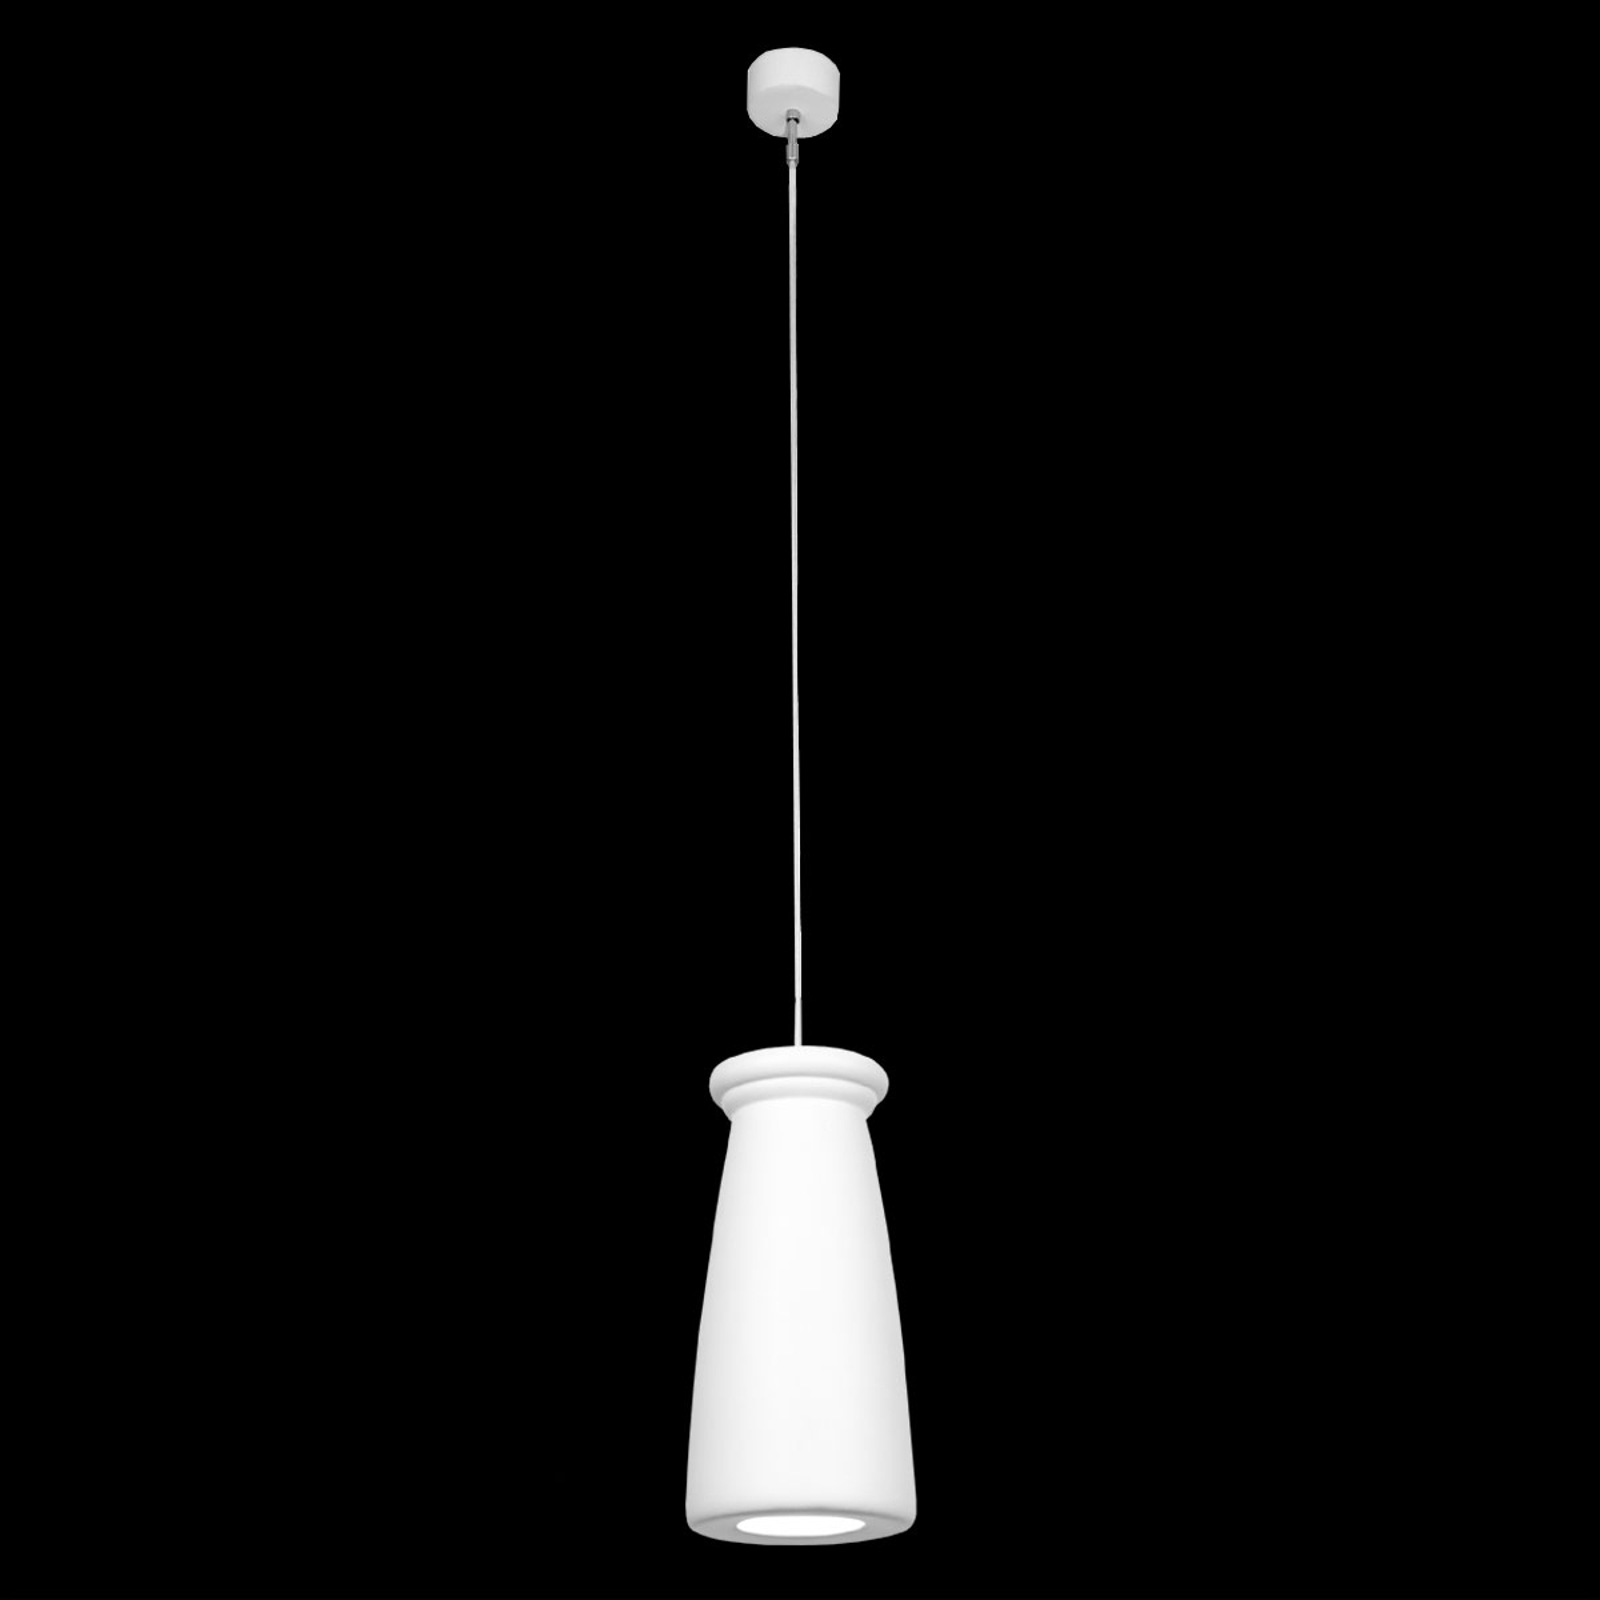 Delikate hanglamp Biscuit, smal